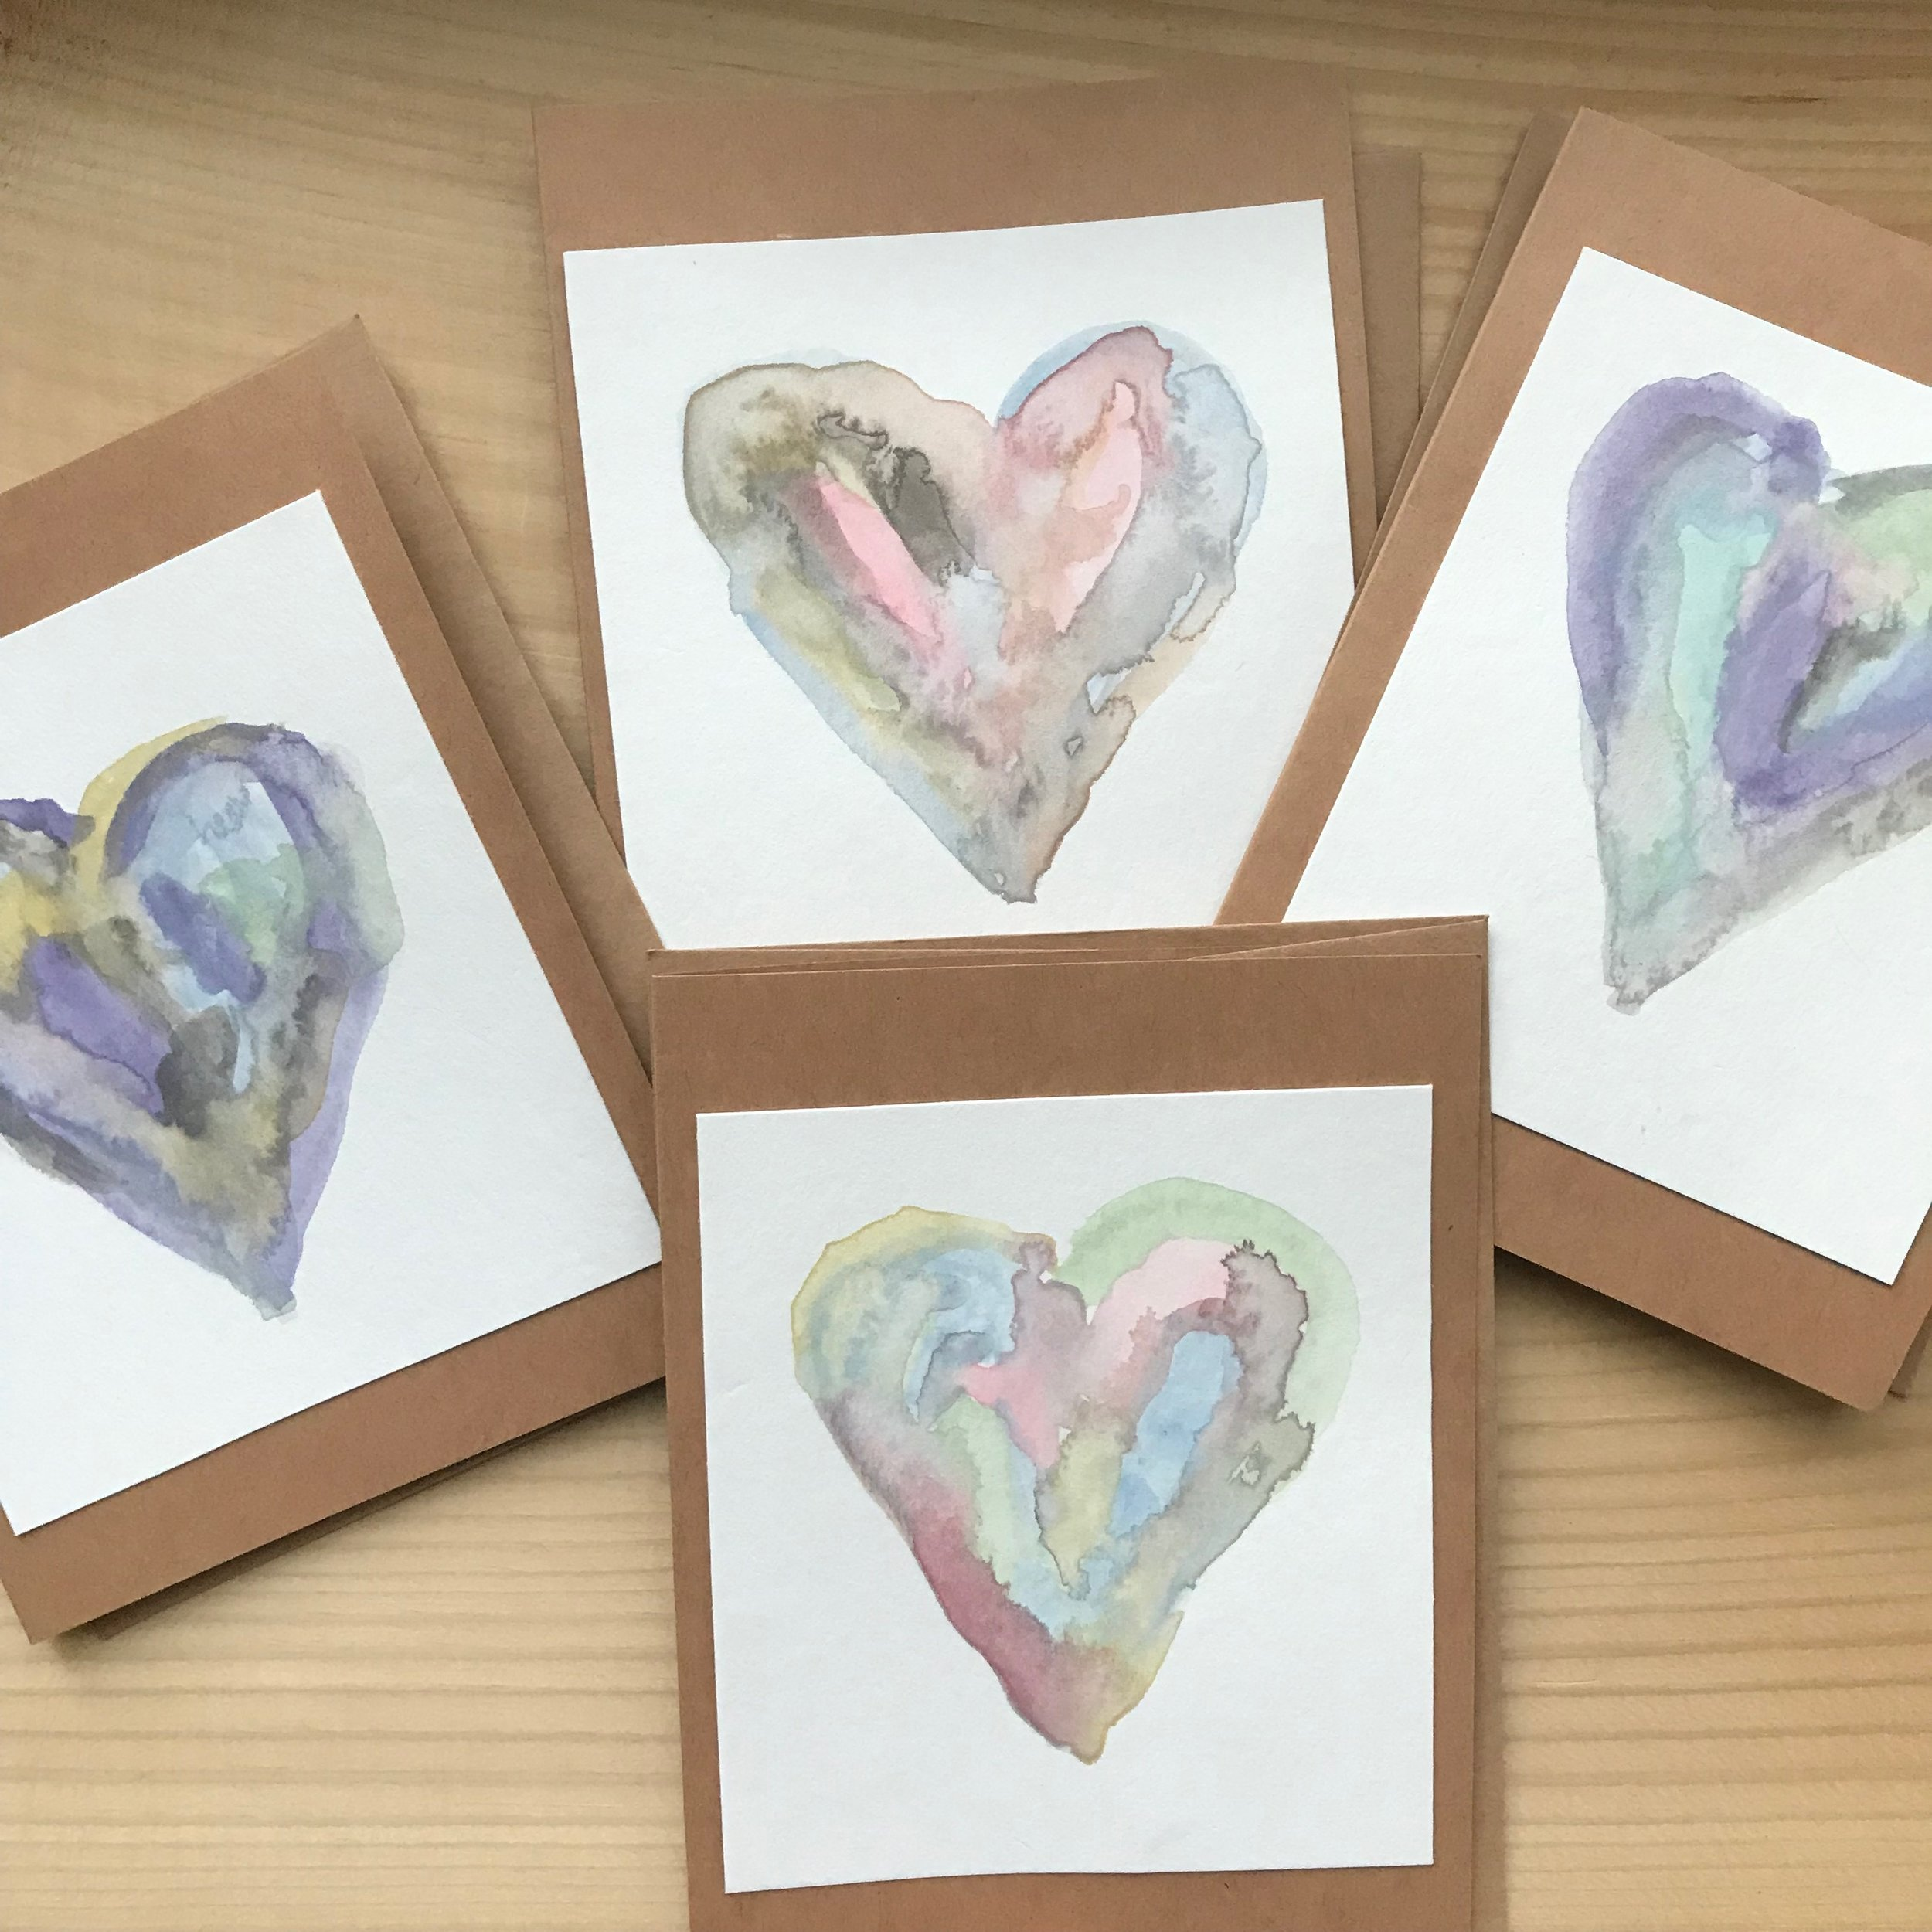 Hand-painted Valentines - I'll be bringing some of these beauties along